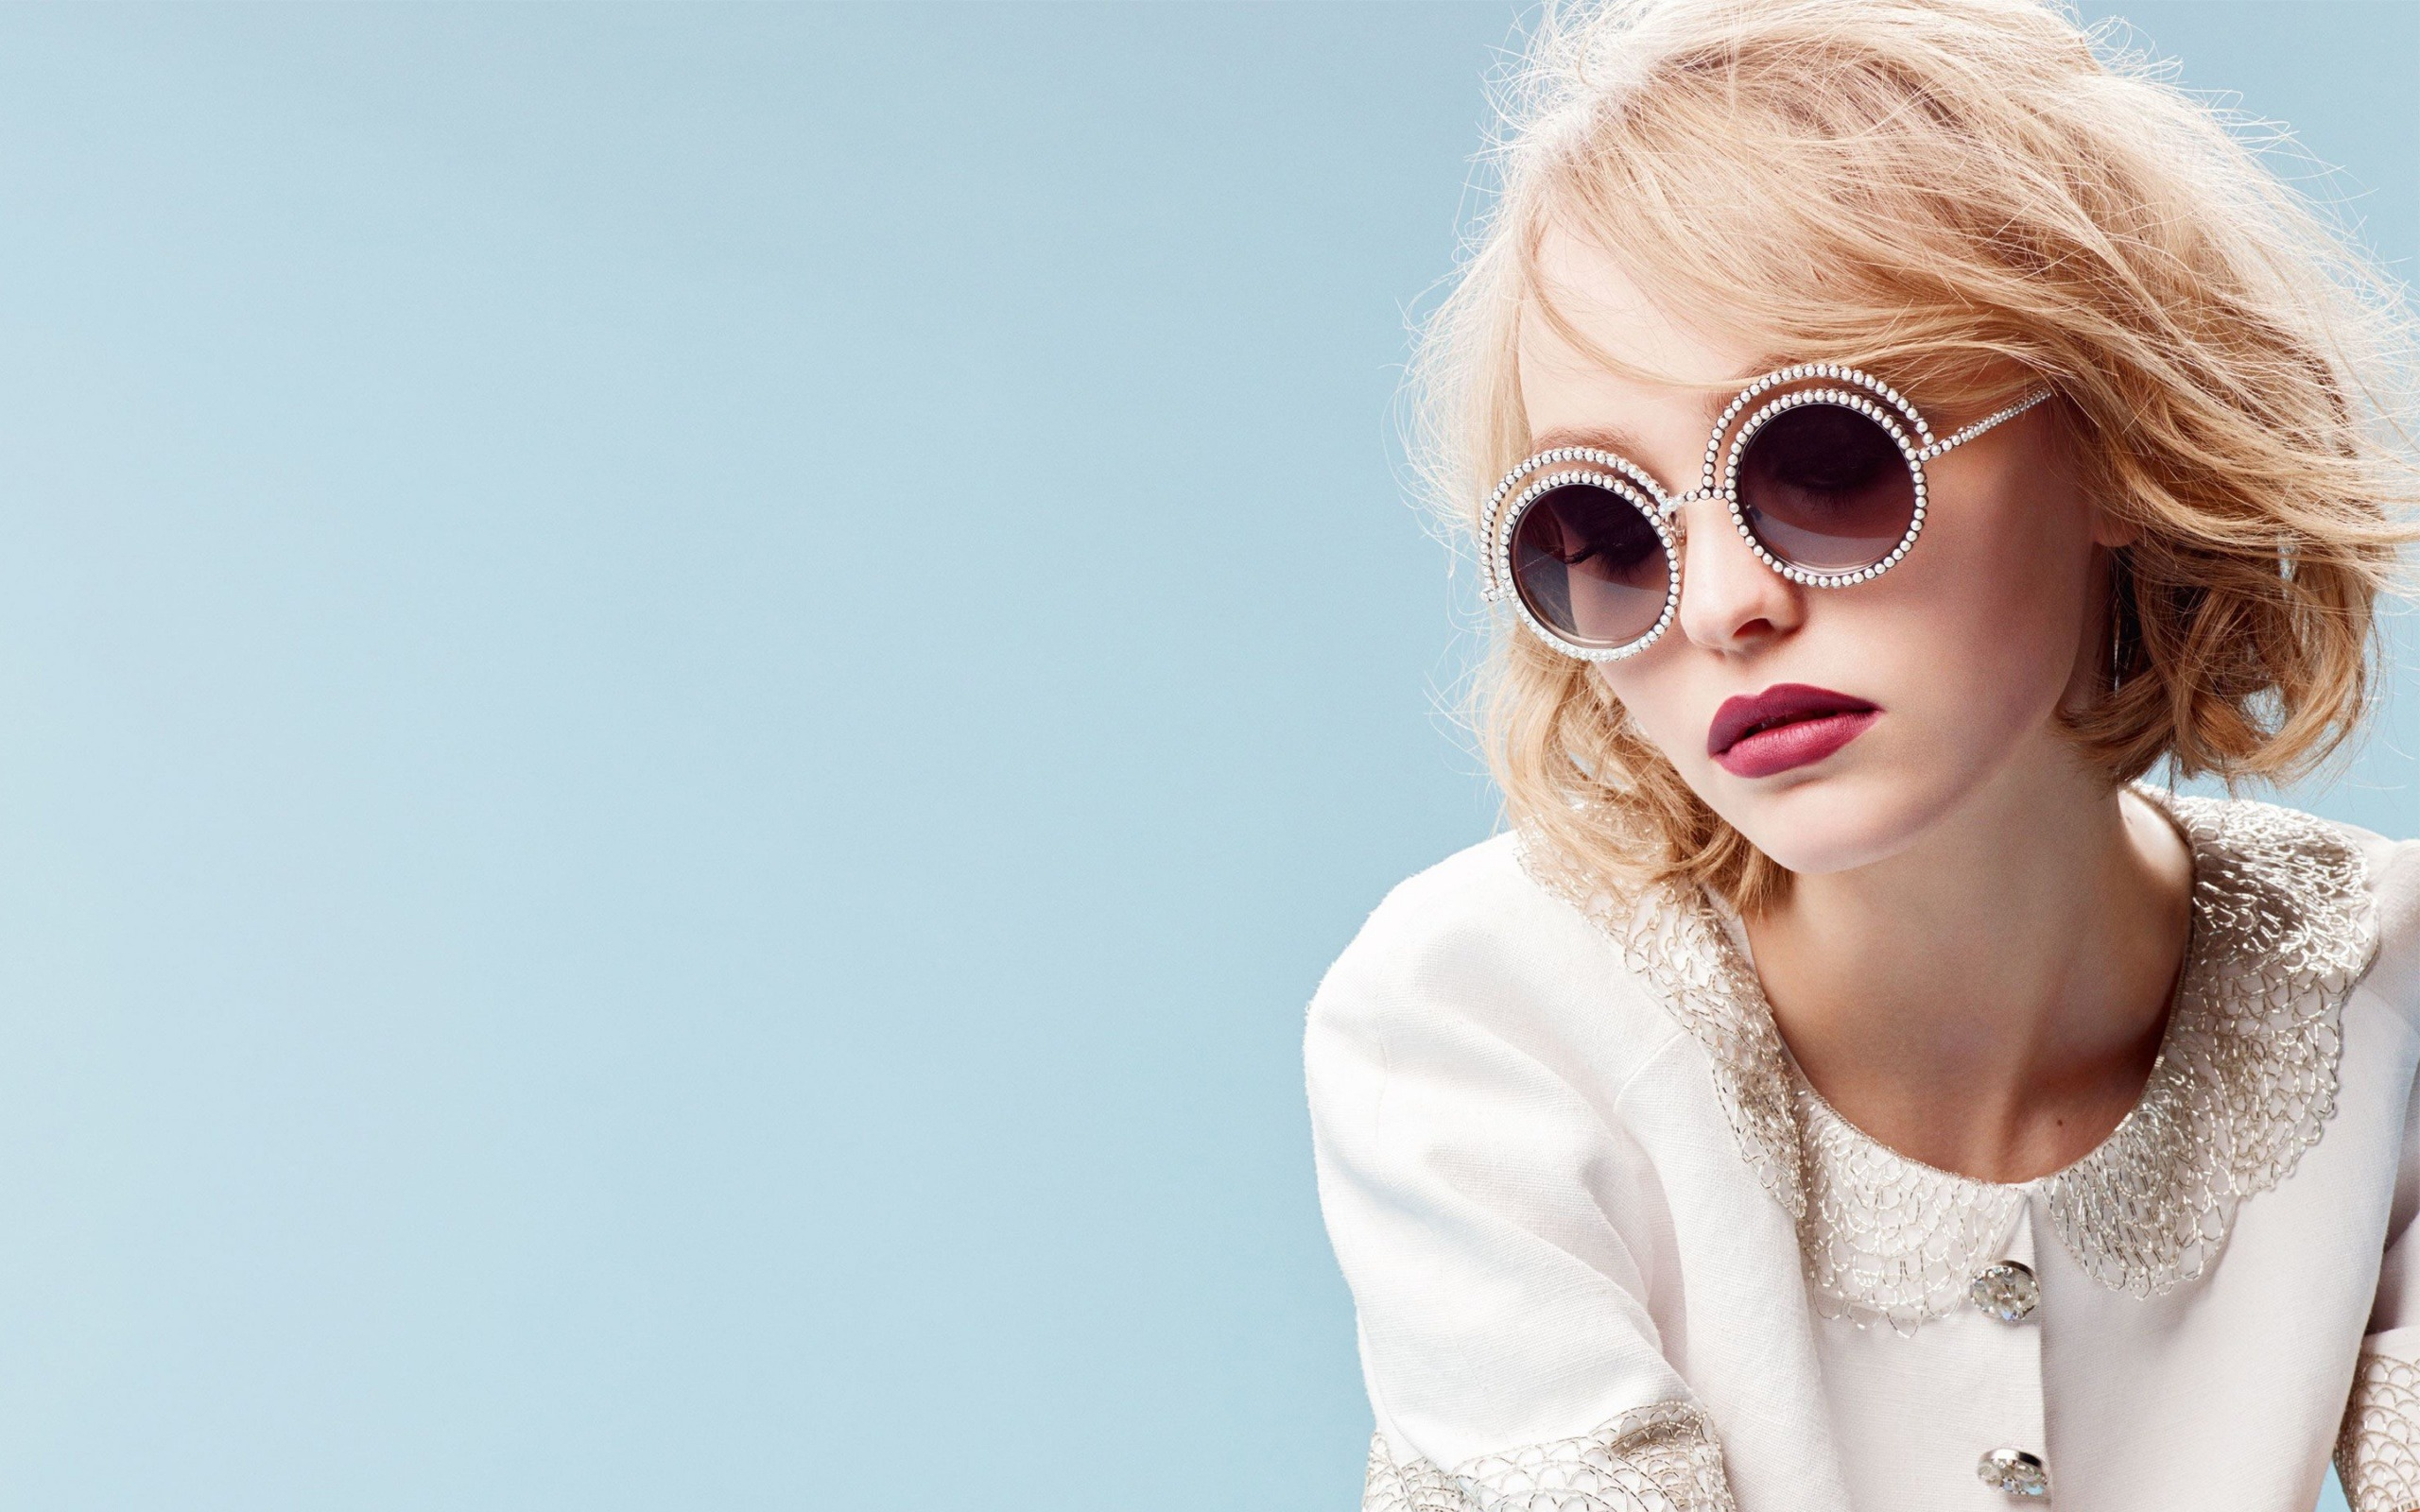 2018 Lily Rose Depp Hd Celebrities 4k Wallpapers Images: Lily Rose Depp 2016-Beauty High Quality Photo Wallpaper